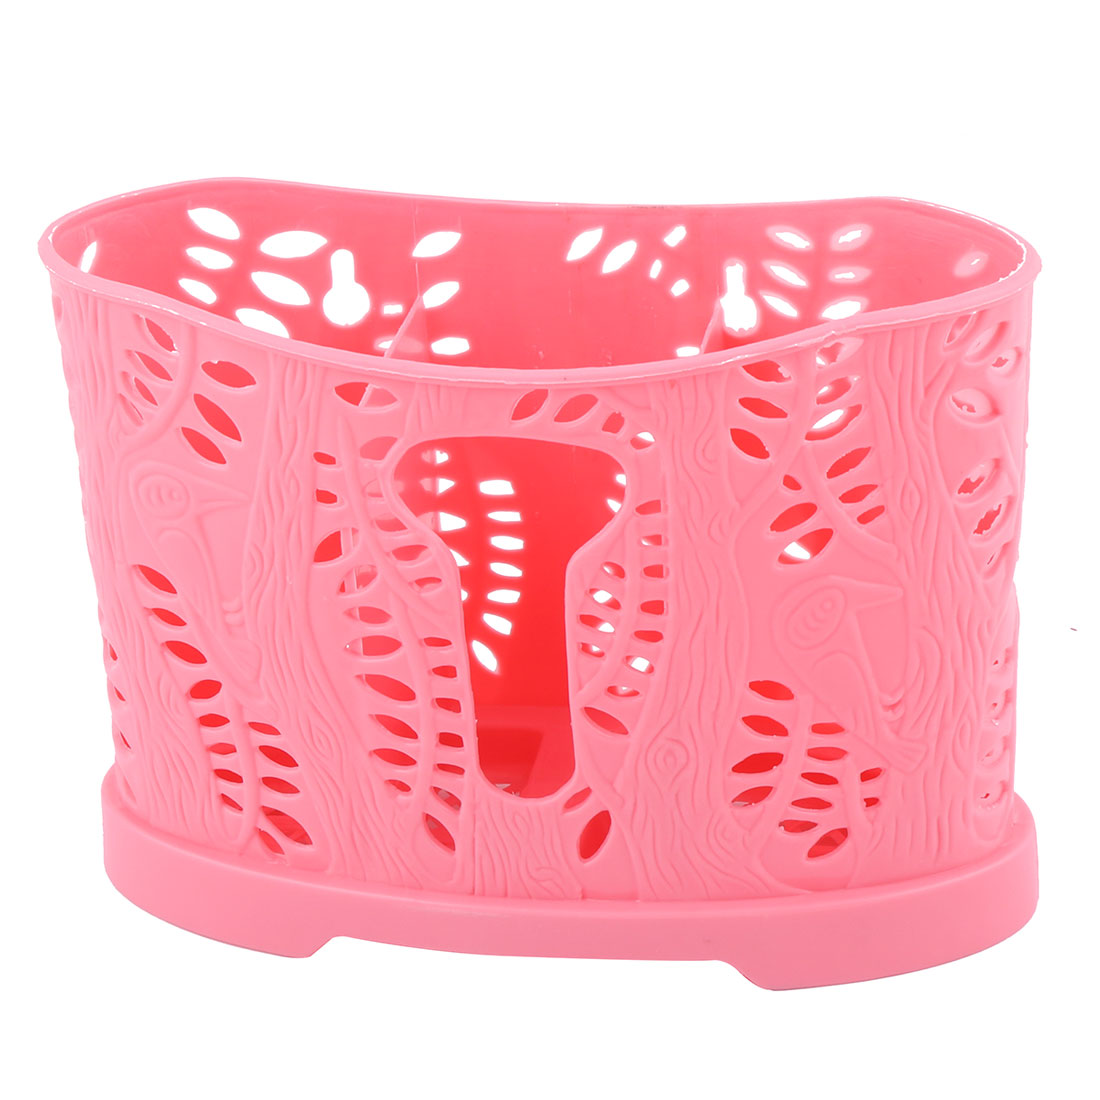 3 Compartment Cutlery Storage Spoon Fork Chopsticks Holder Container Hot Pink